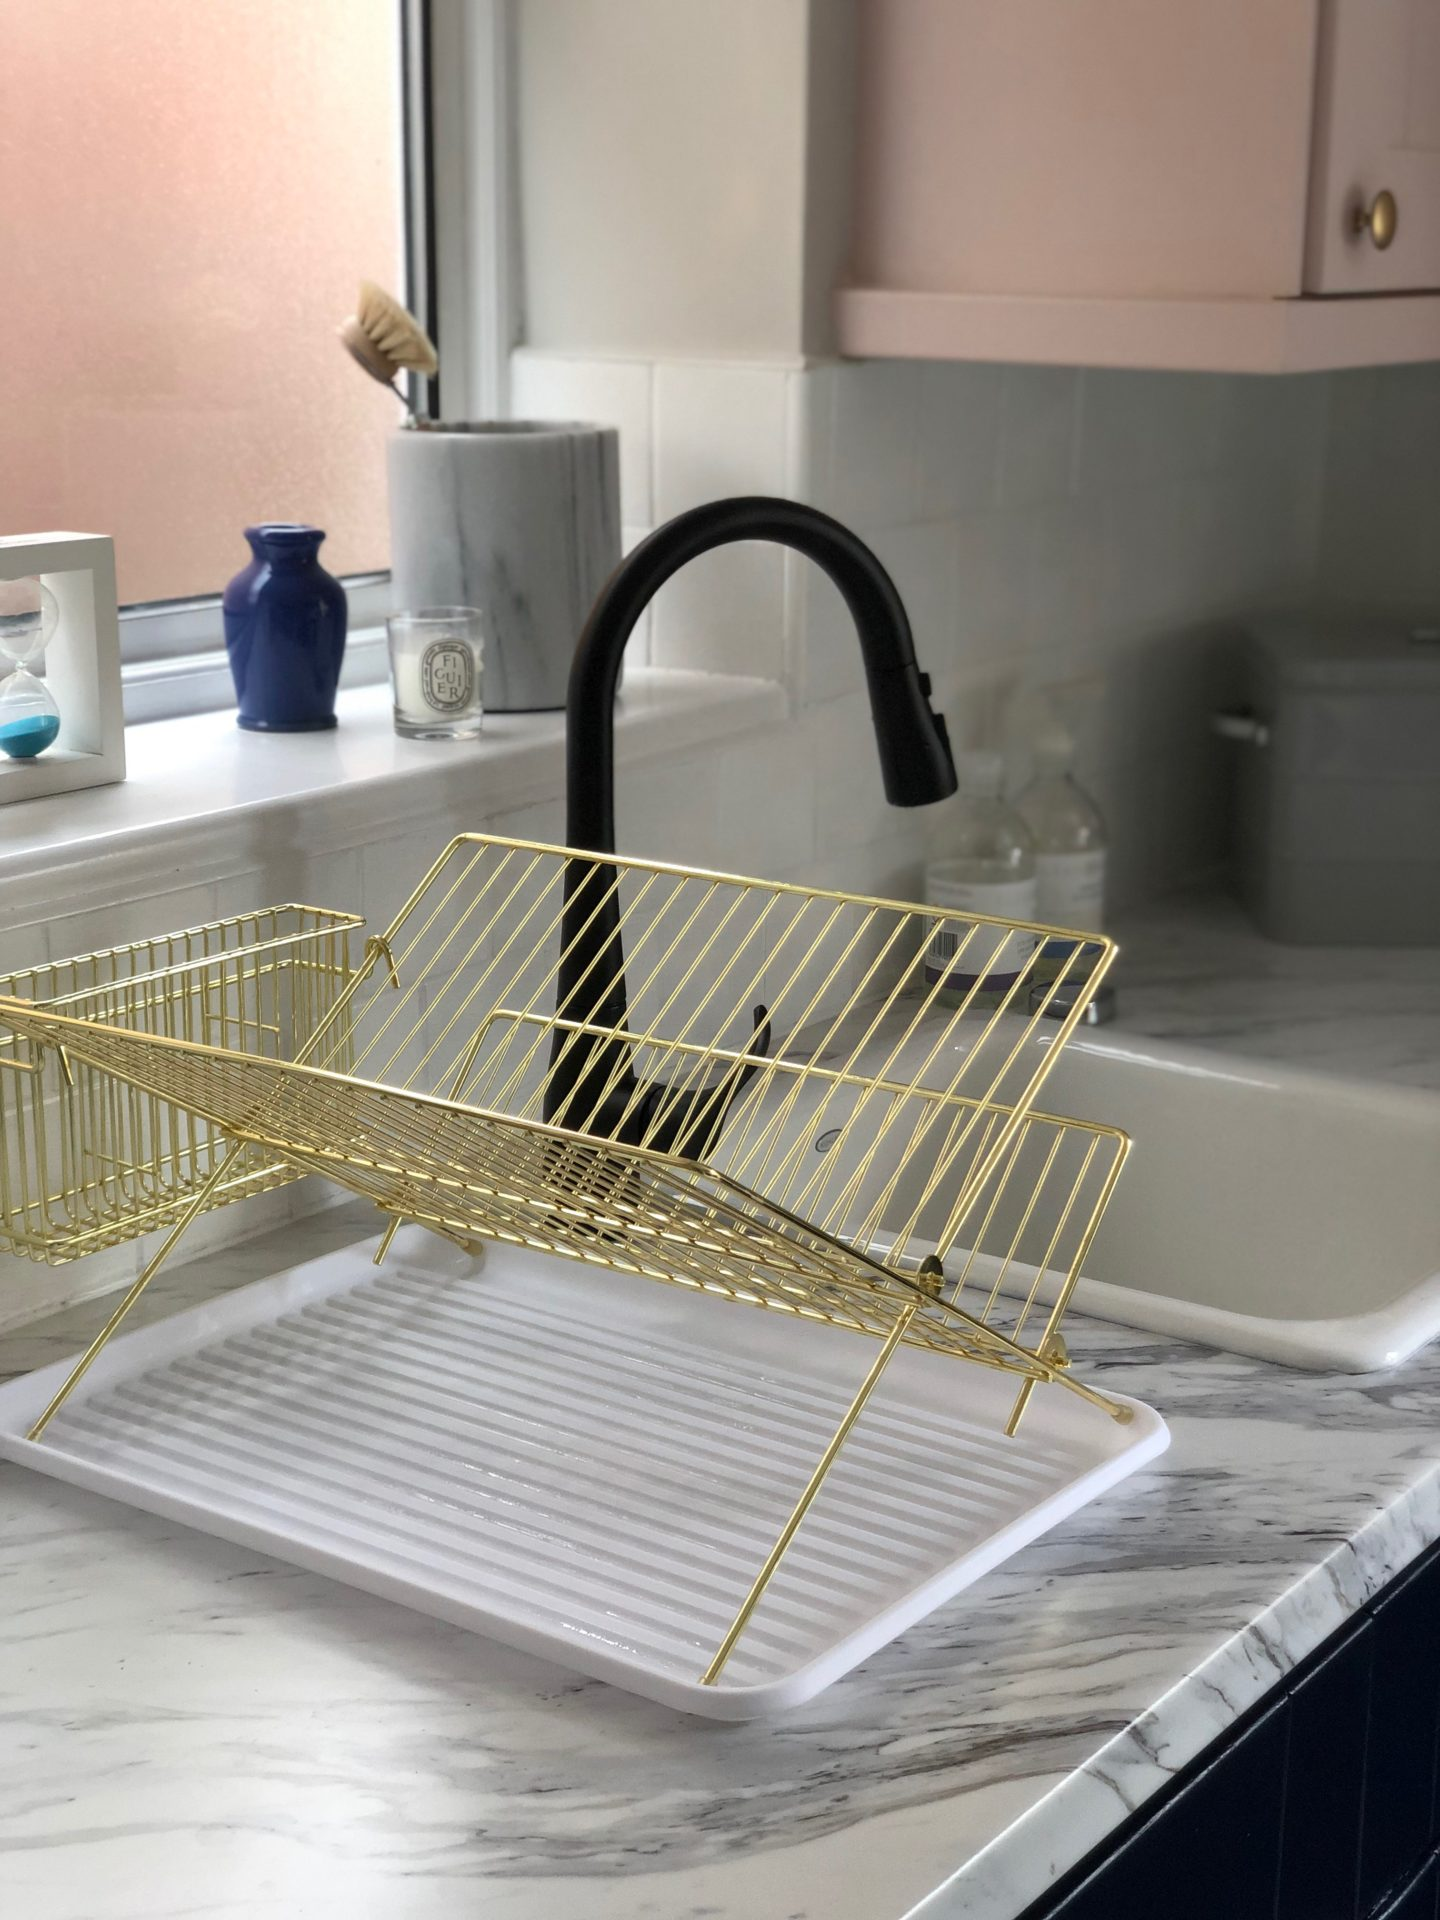 Red Candy Draining Rack